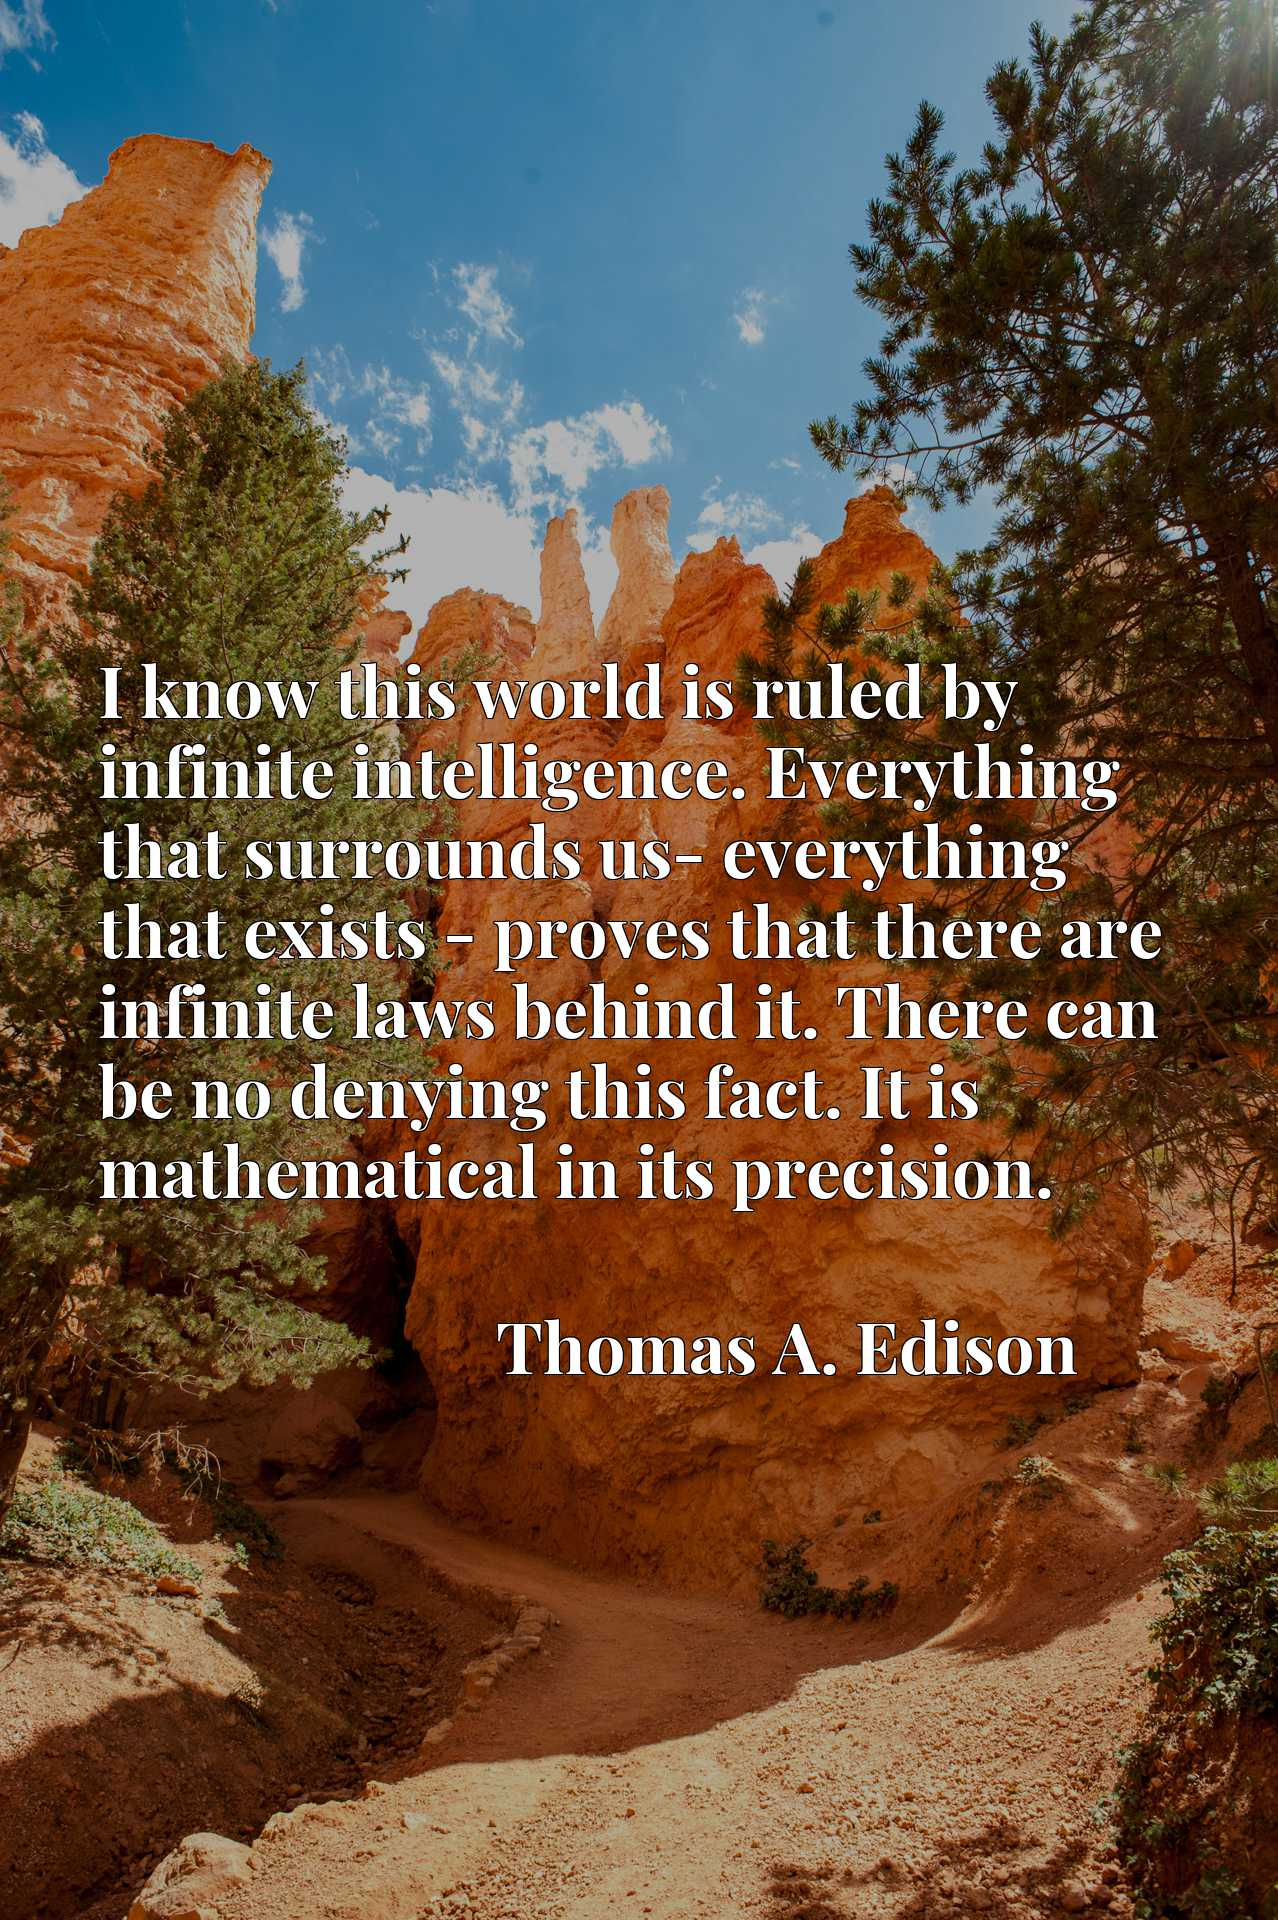 I know this world is ruled by infinite intelligence. Everything that surrounds us- everything that exists - proves that there are infinite laws behind it. There can be no denying this fact. It is mathematical in its precision.